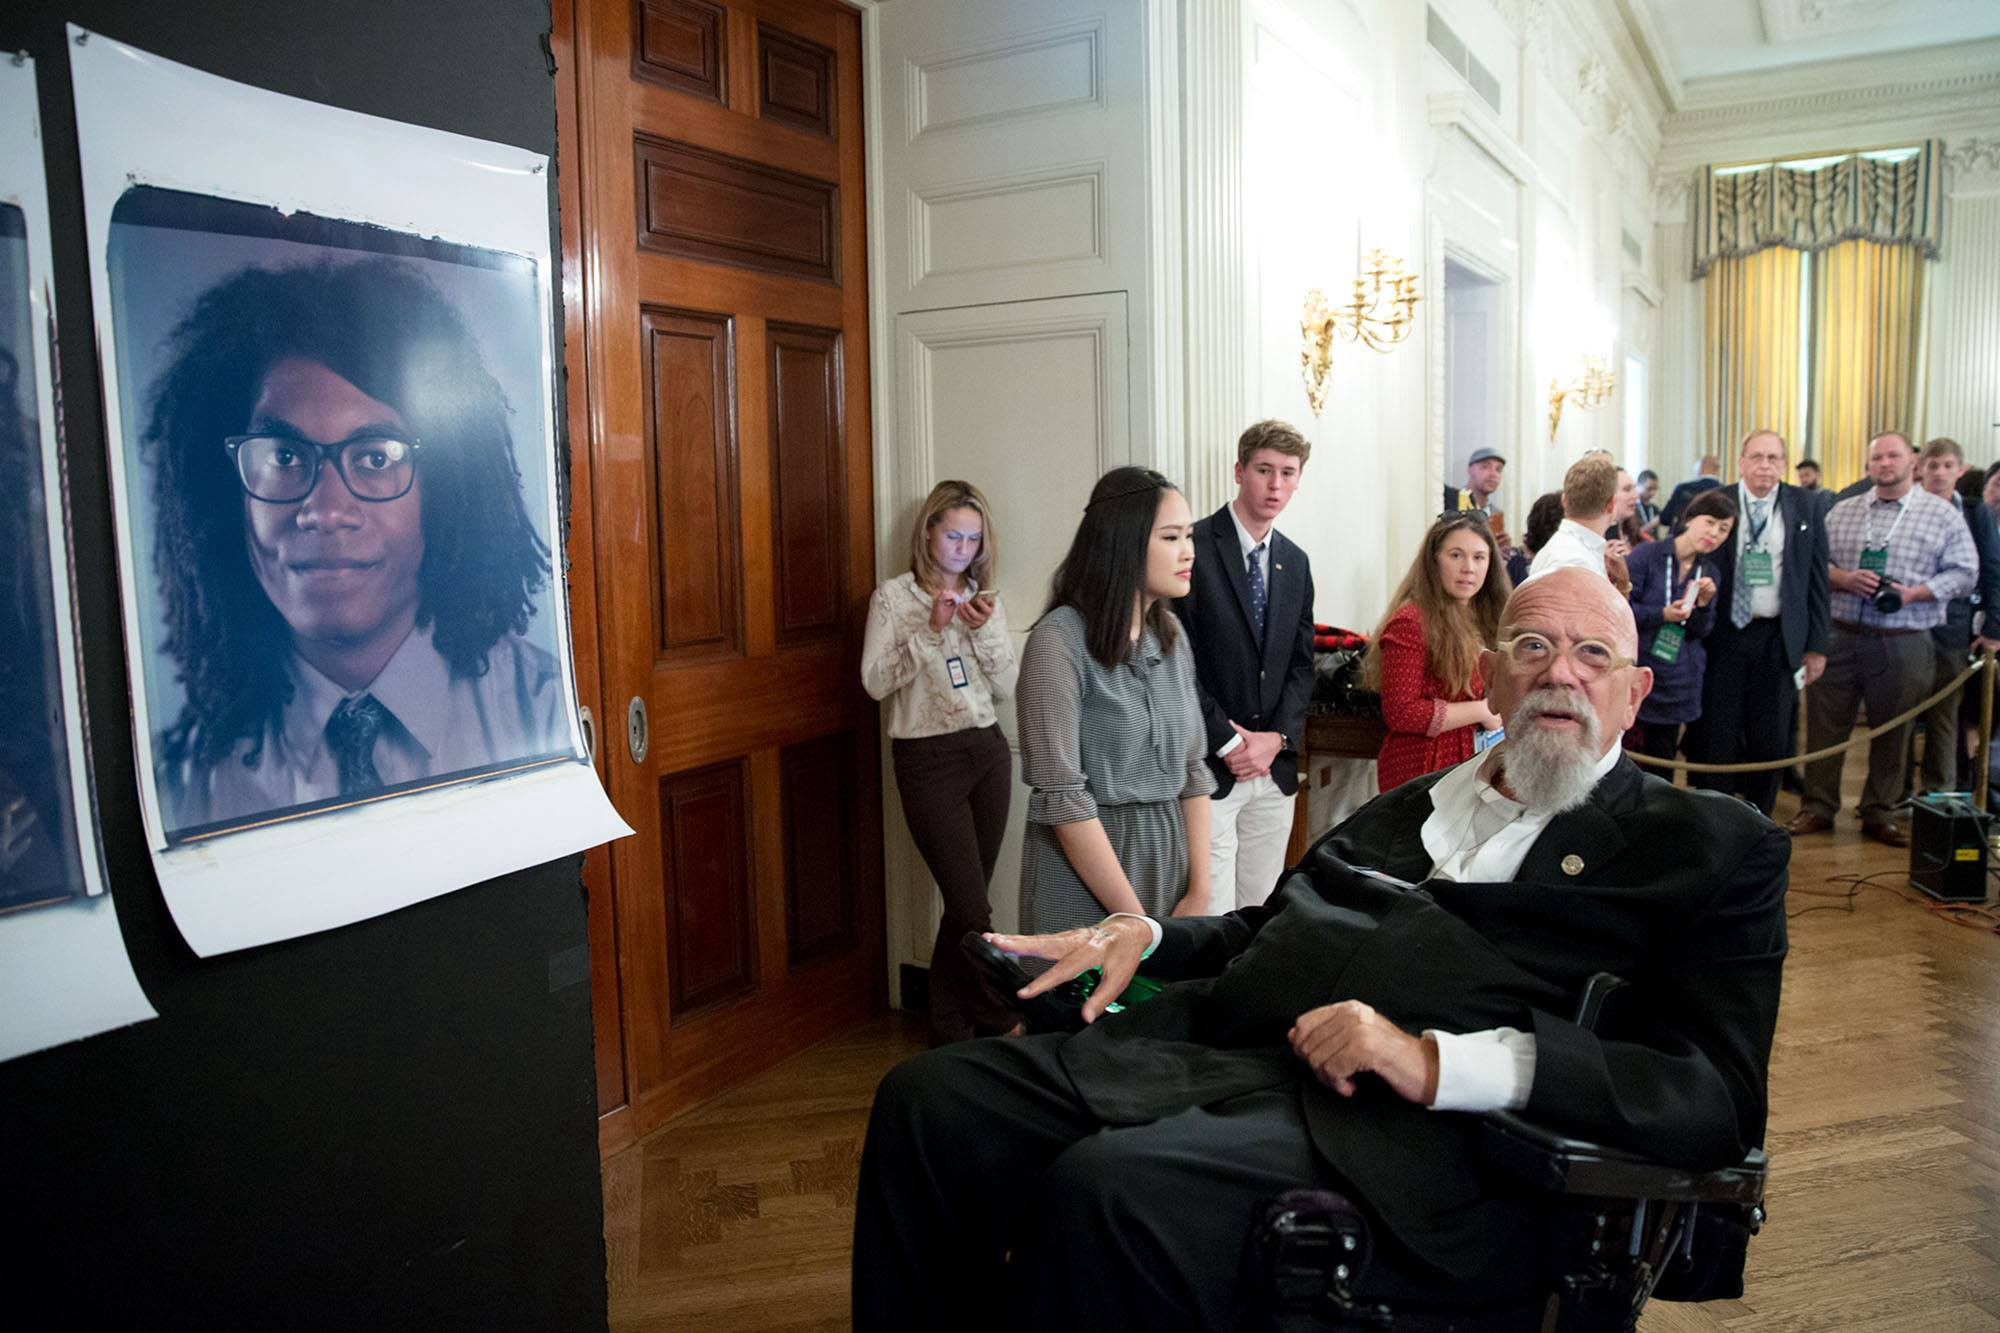 Artist Chuck Close Takes Large Portraits Of Visitors In The State Dining Room White House During South By Lawn Event On